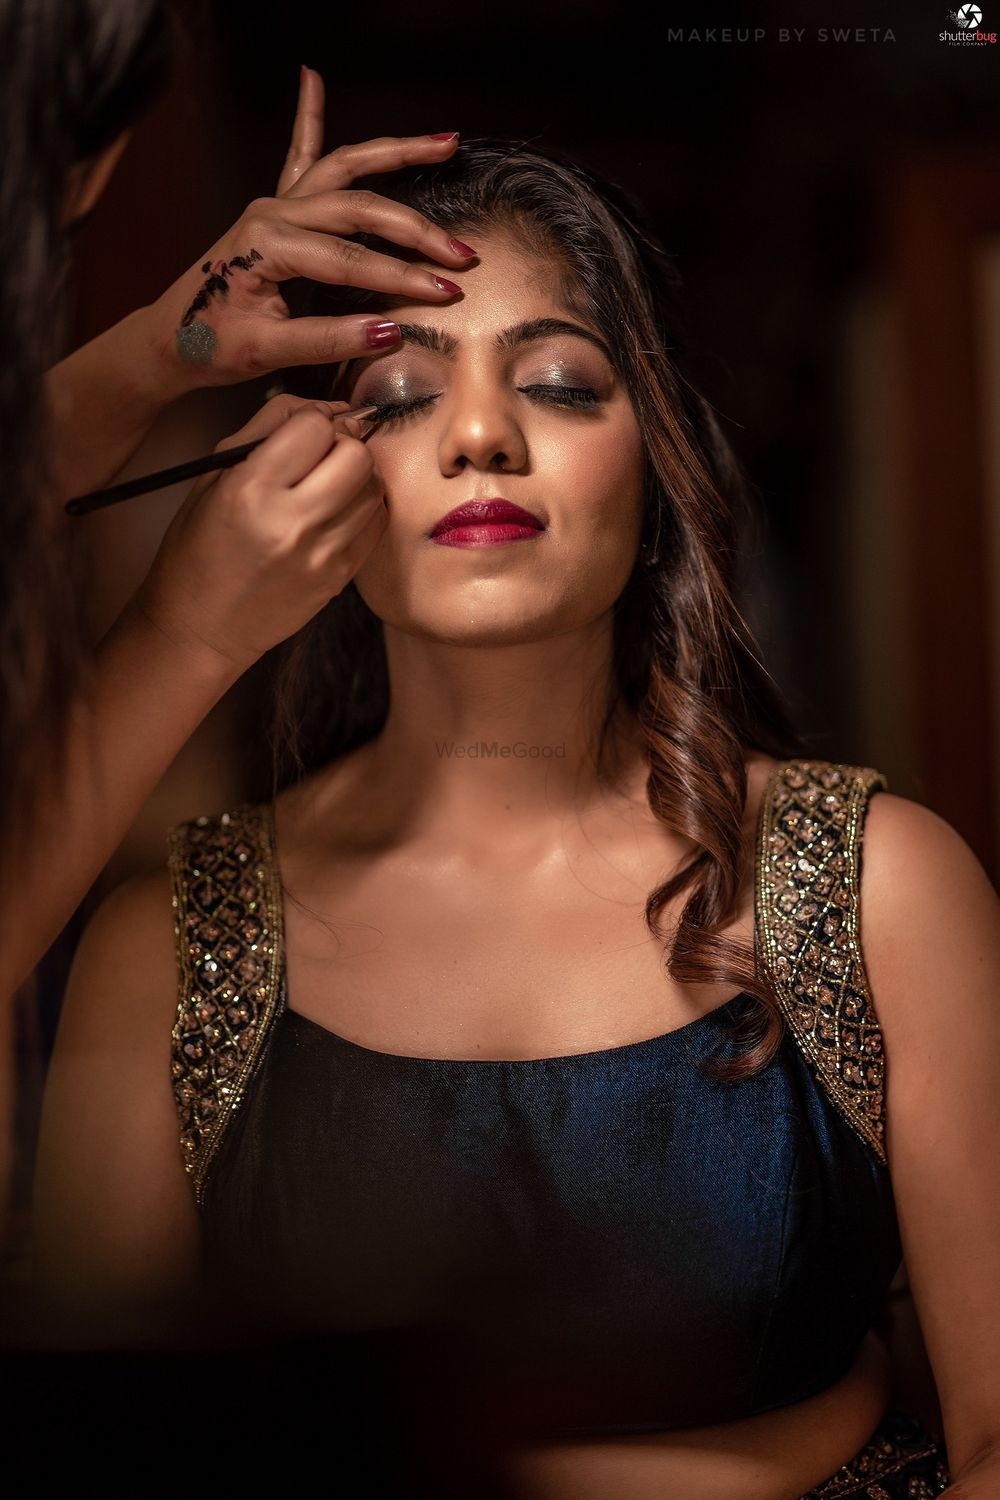 Photo From Simply Stunning - By Makeup by Sweta